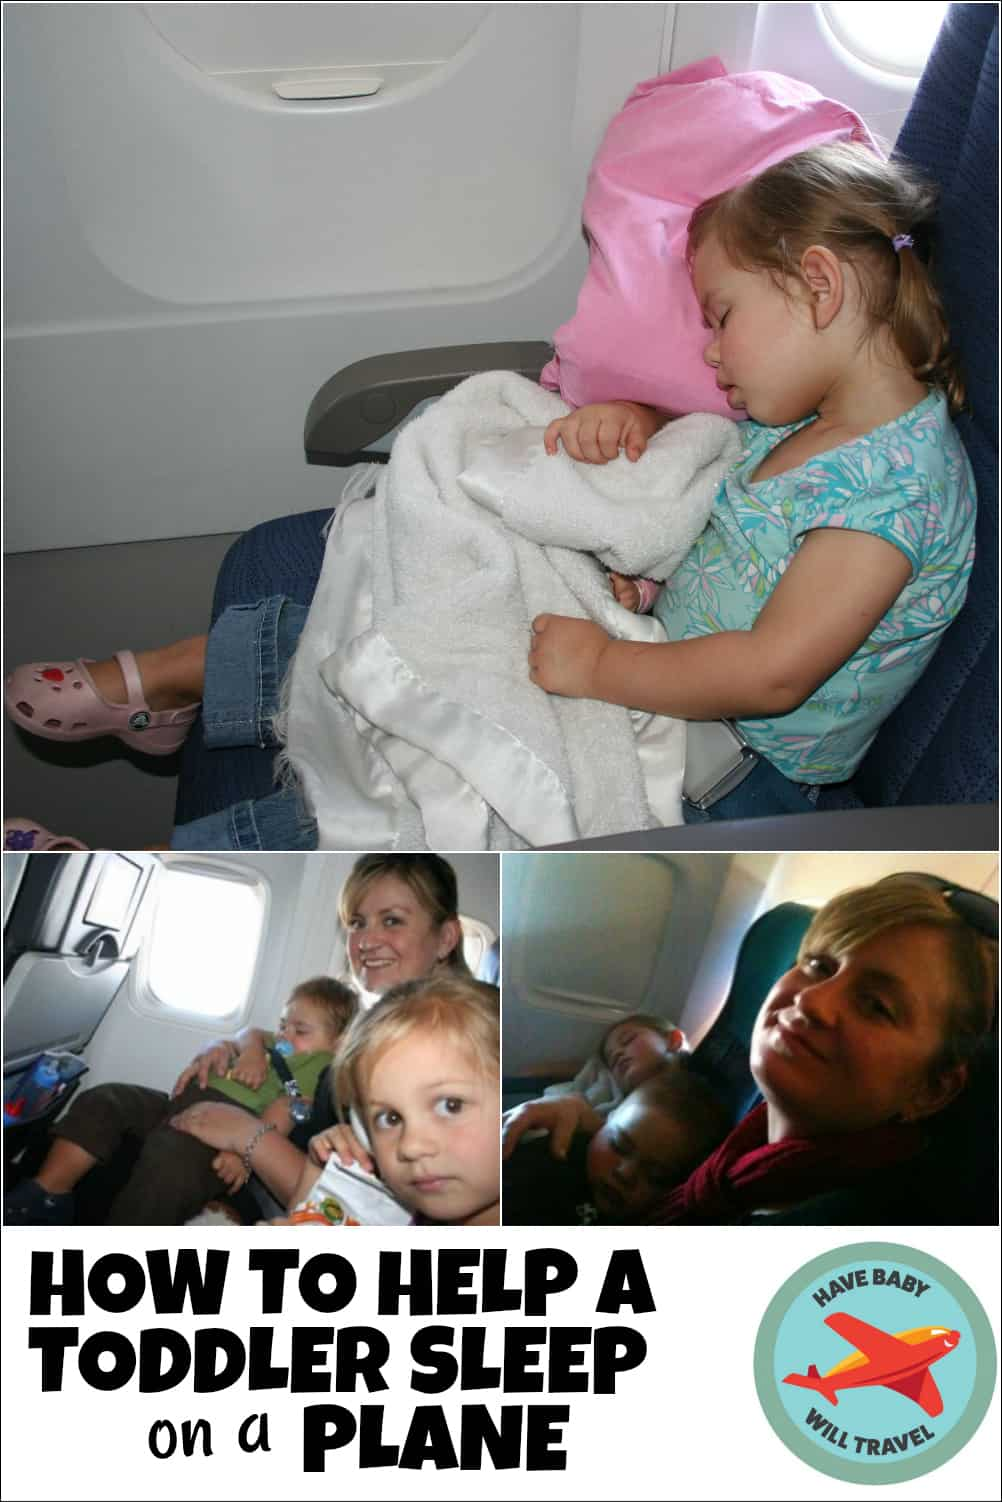 How to help a toddler sleep on a plane